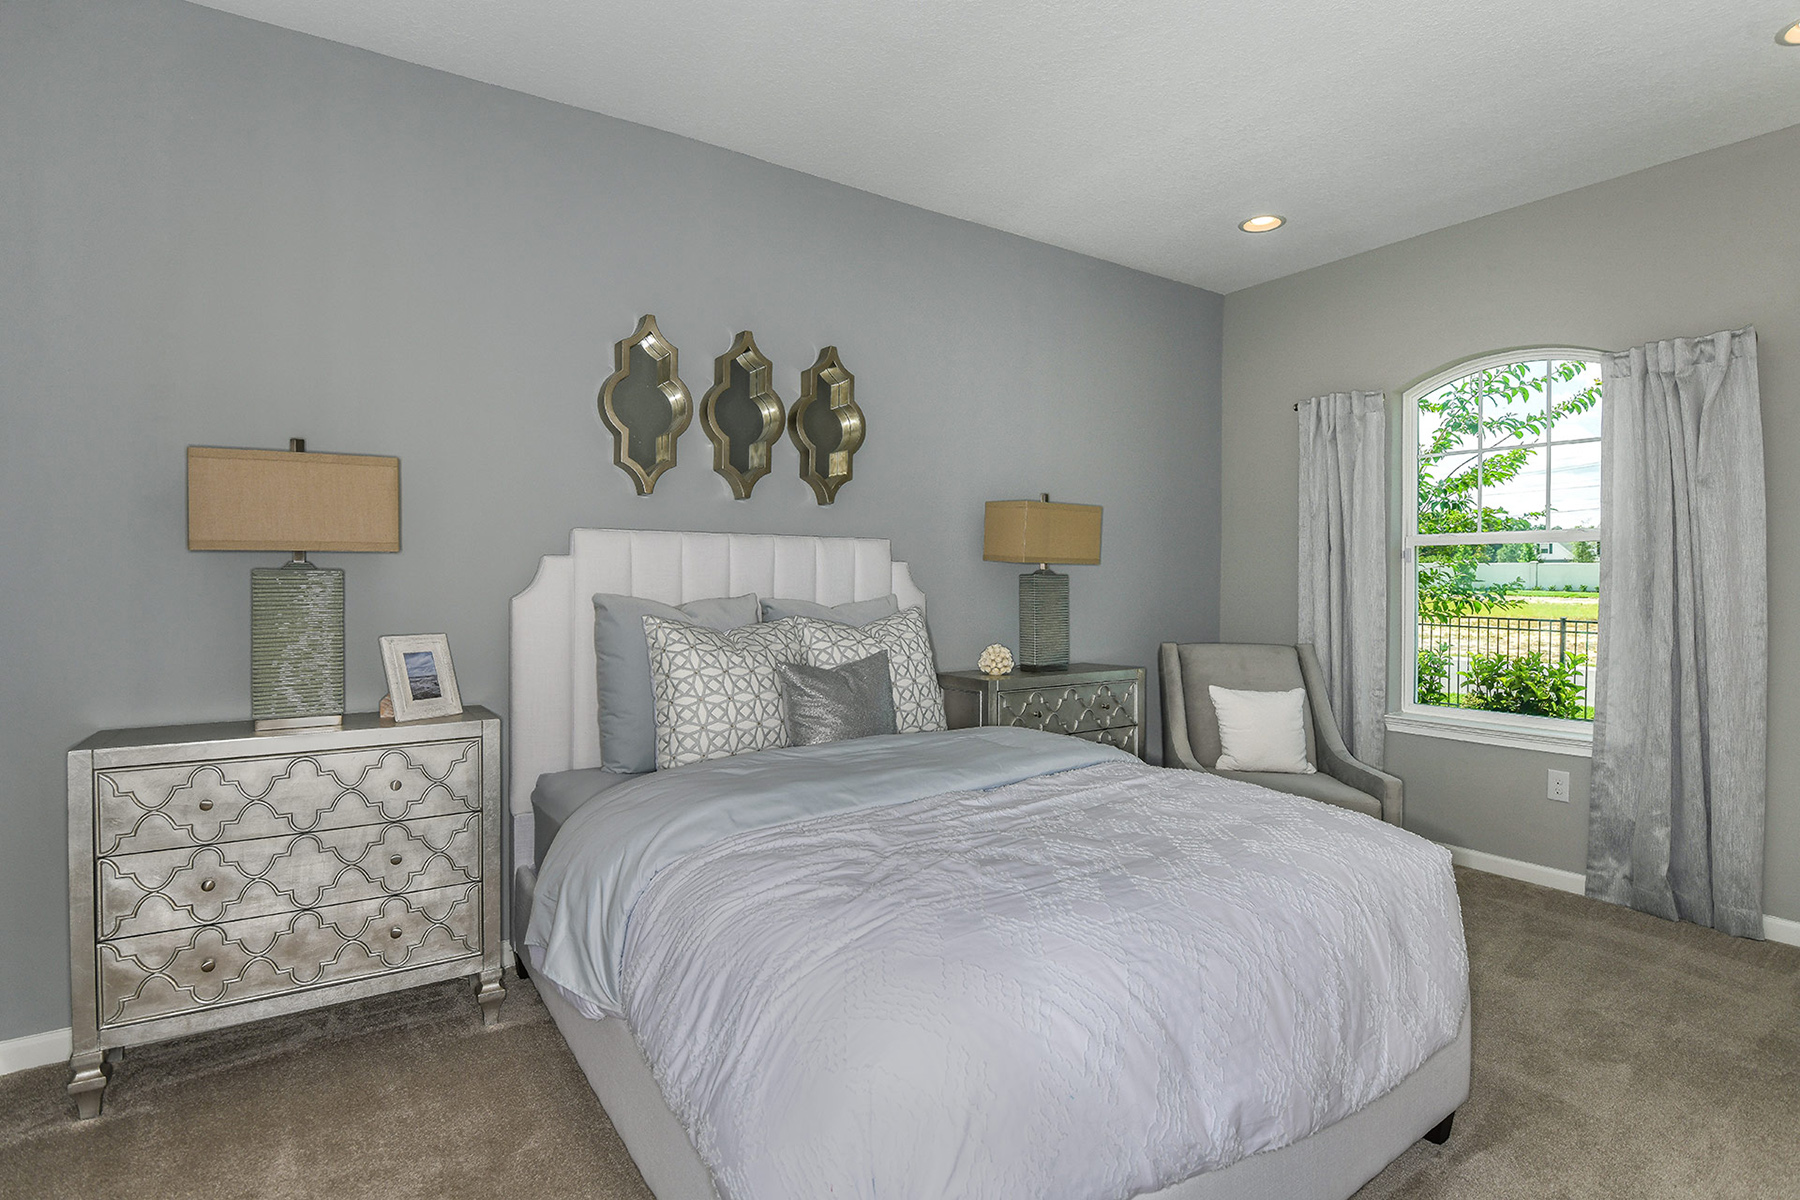 Coquina Plan Bedroom at Boyette Park in Riverview Florida by Mattamy Homes